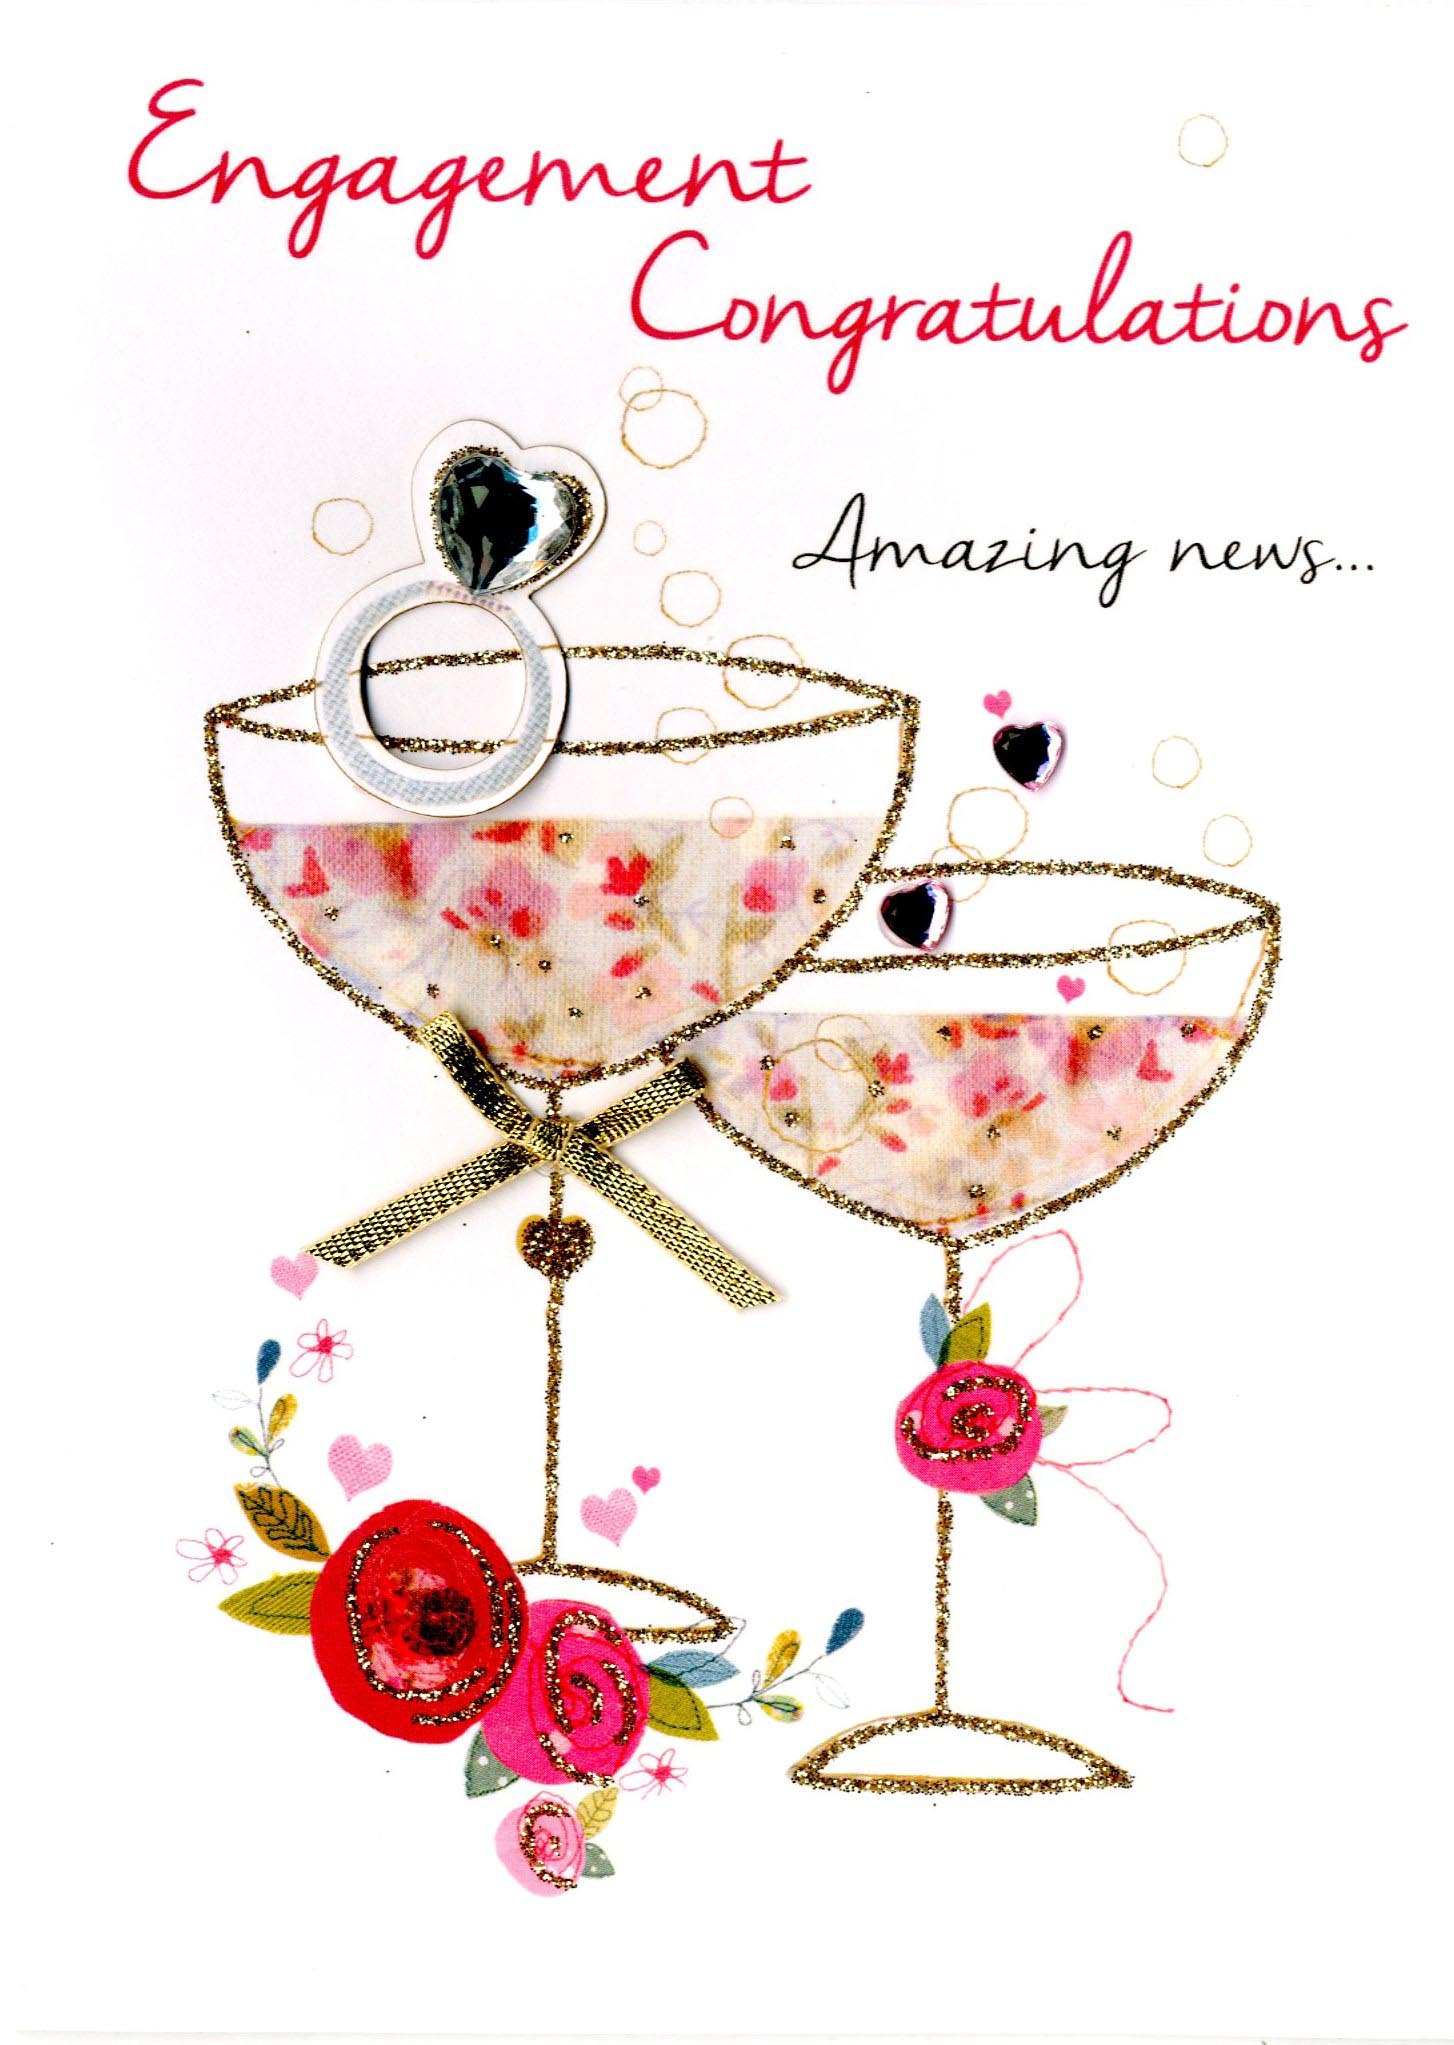 Engagement congratulations greeting card cards love kates engagement congratulations greeting card m4hsunfo